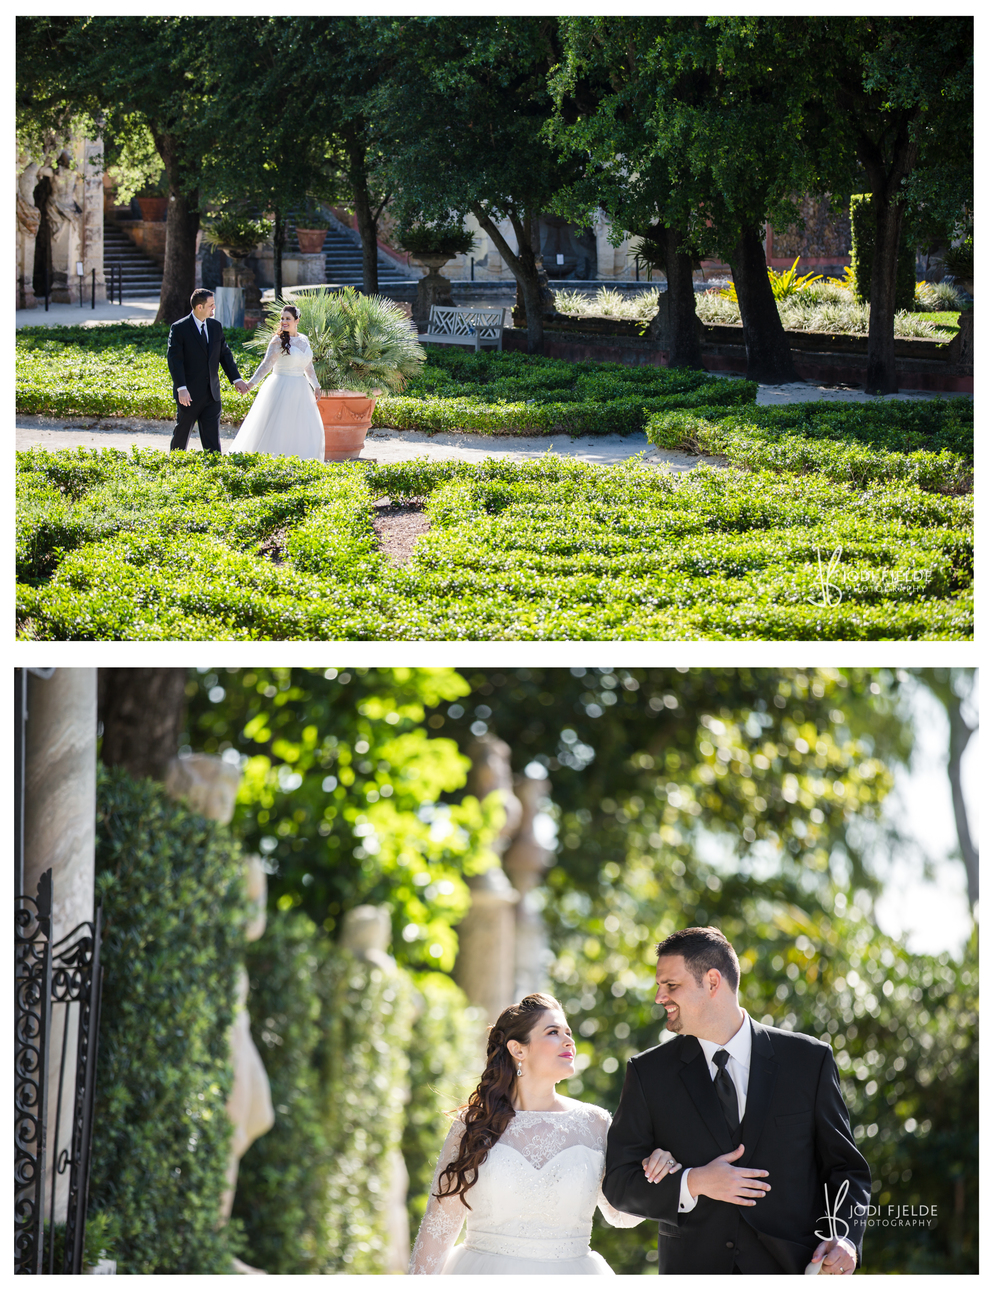 Vizcaya_Miami_Florida_Bridal_Wedding_Portraits_Jodi_Fjelde_Photography-8.jpg